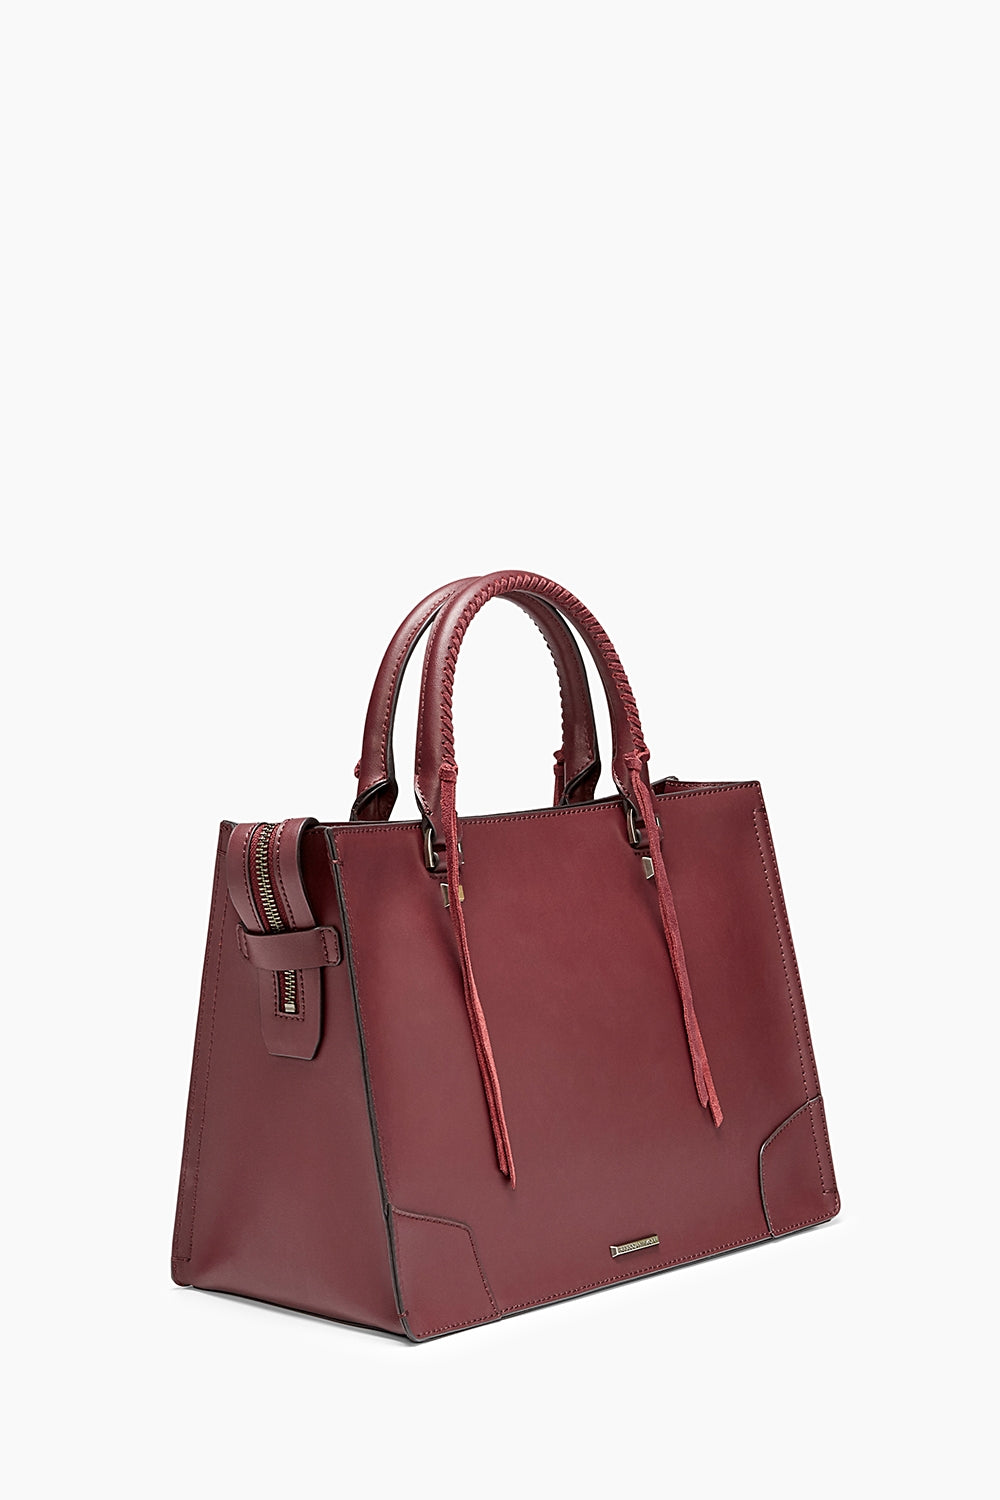 Stripe Regan Satchel Tote